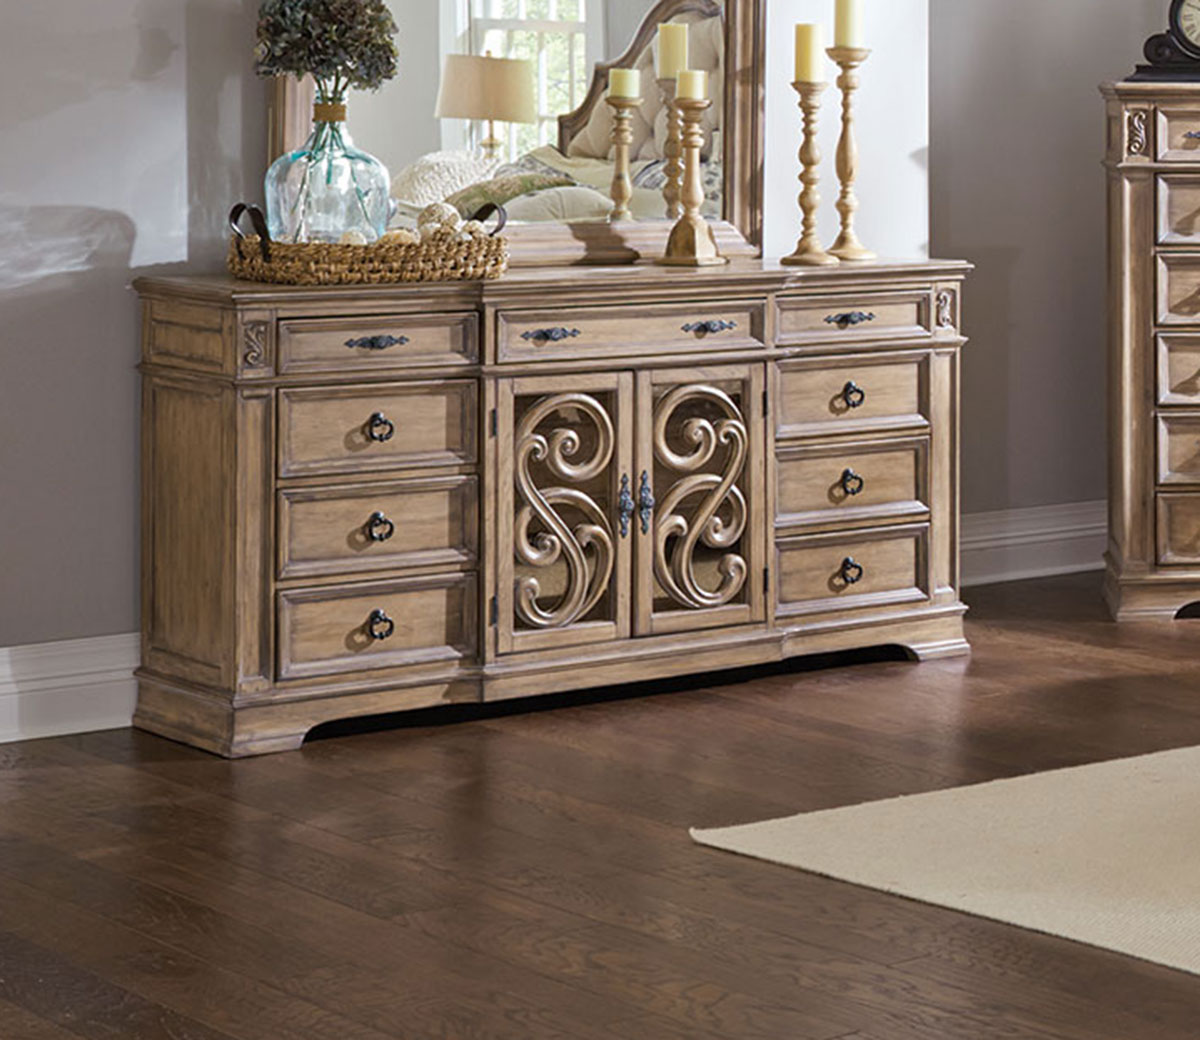 Coaster Ilana Dresser - Antique Linen